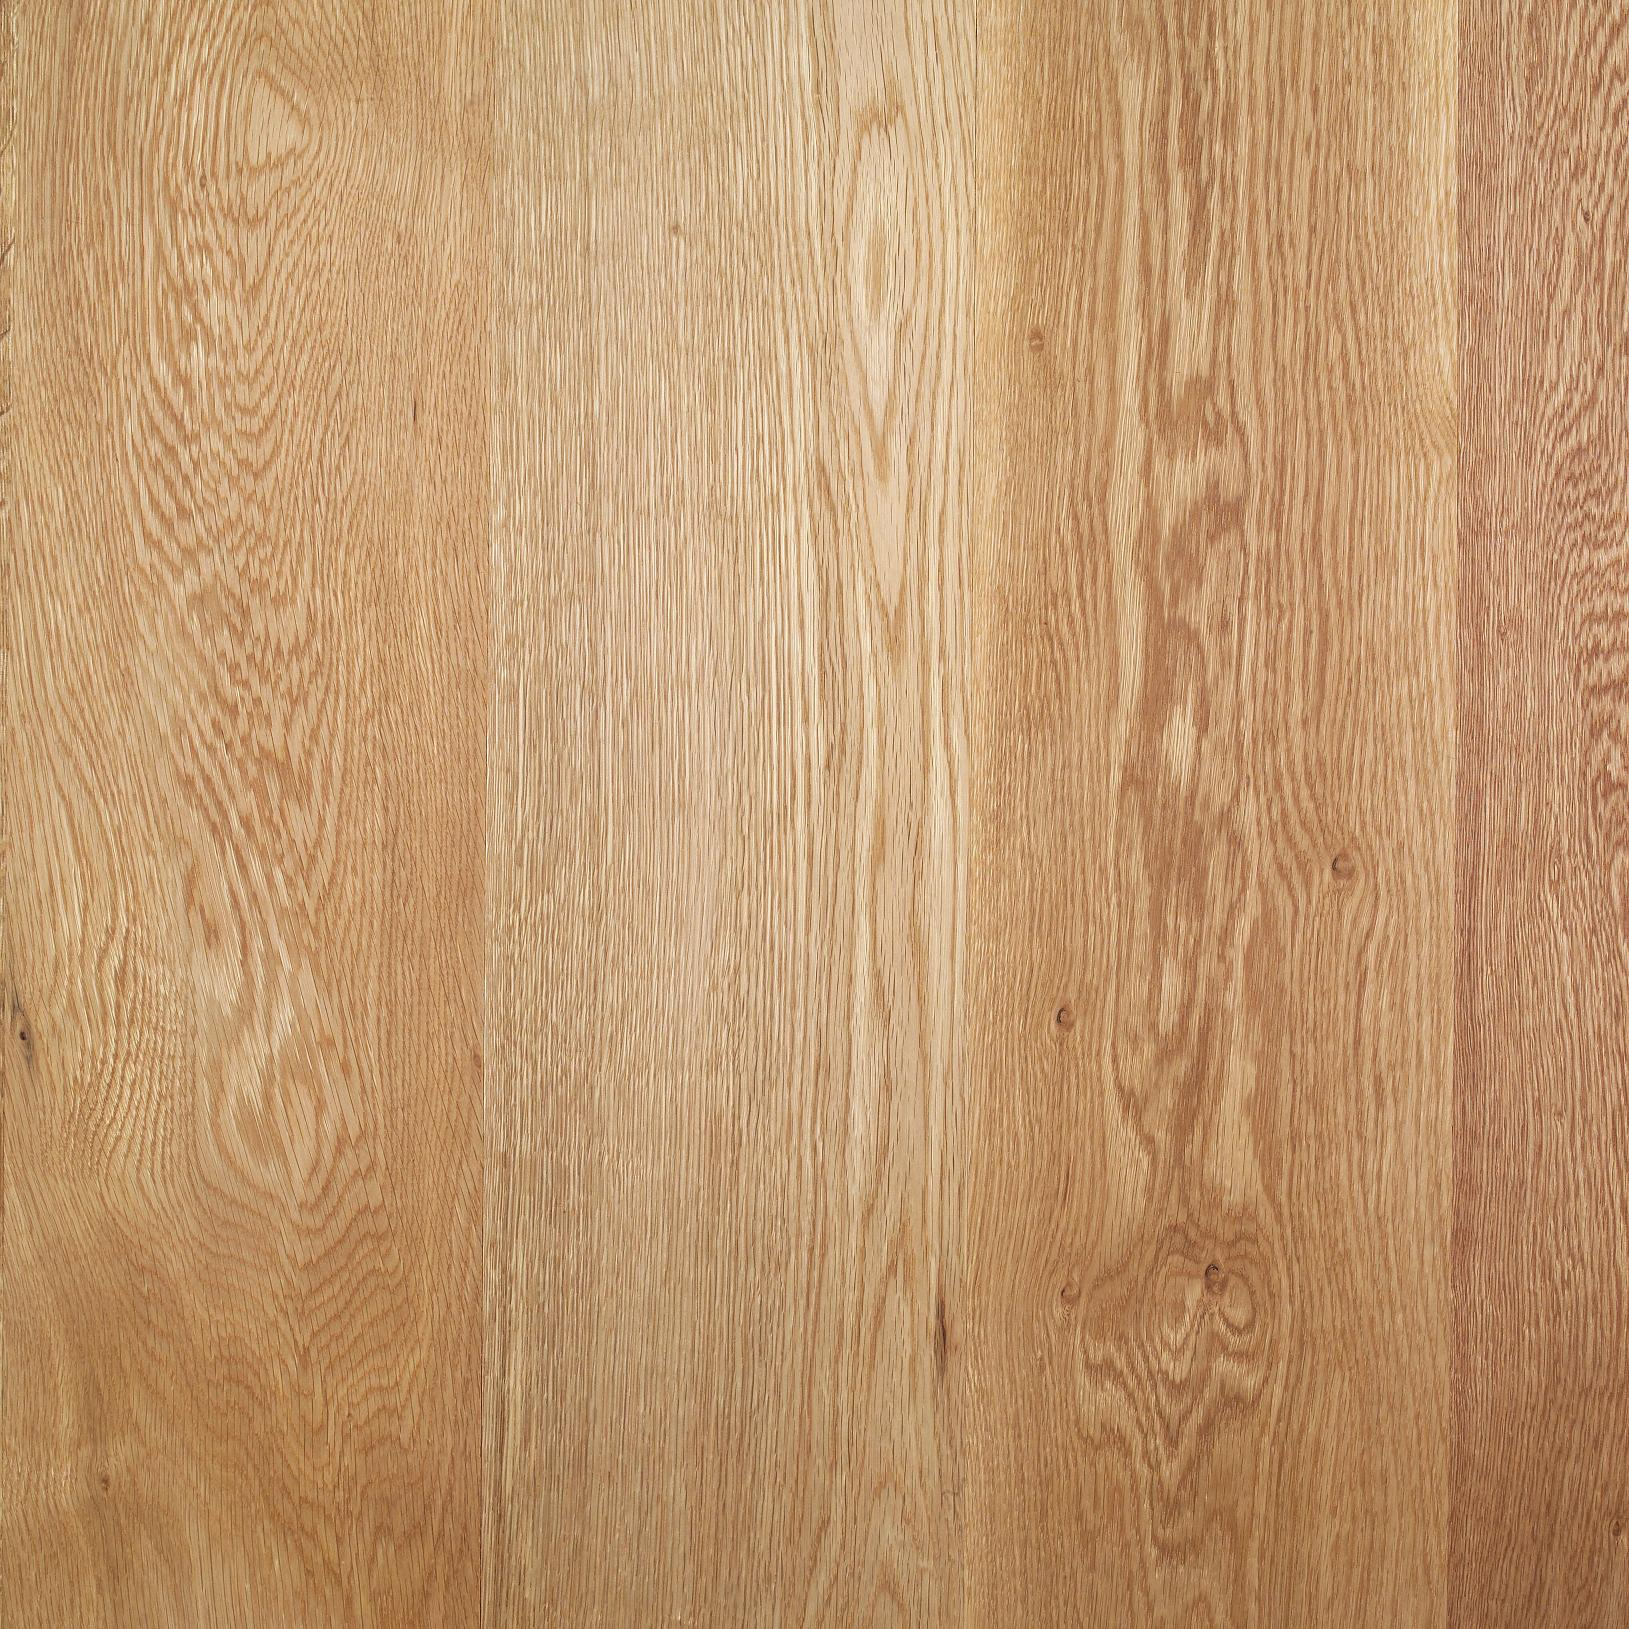 Fumed oak flooring with white oiled images femalecelebrity for Oak wood flooring